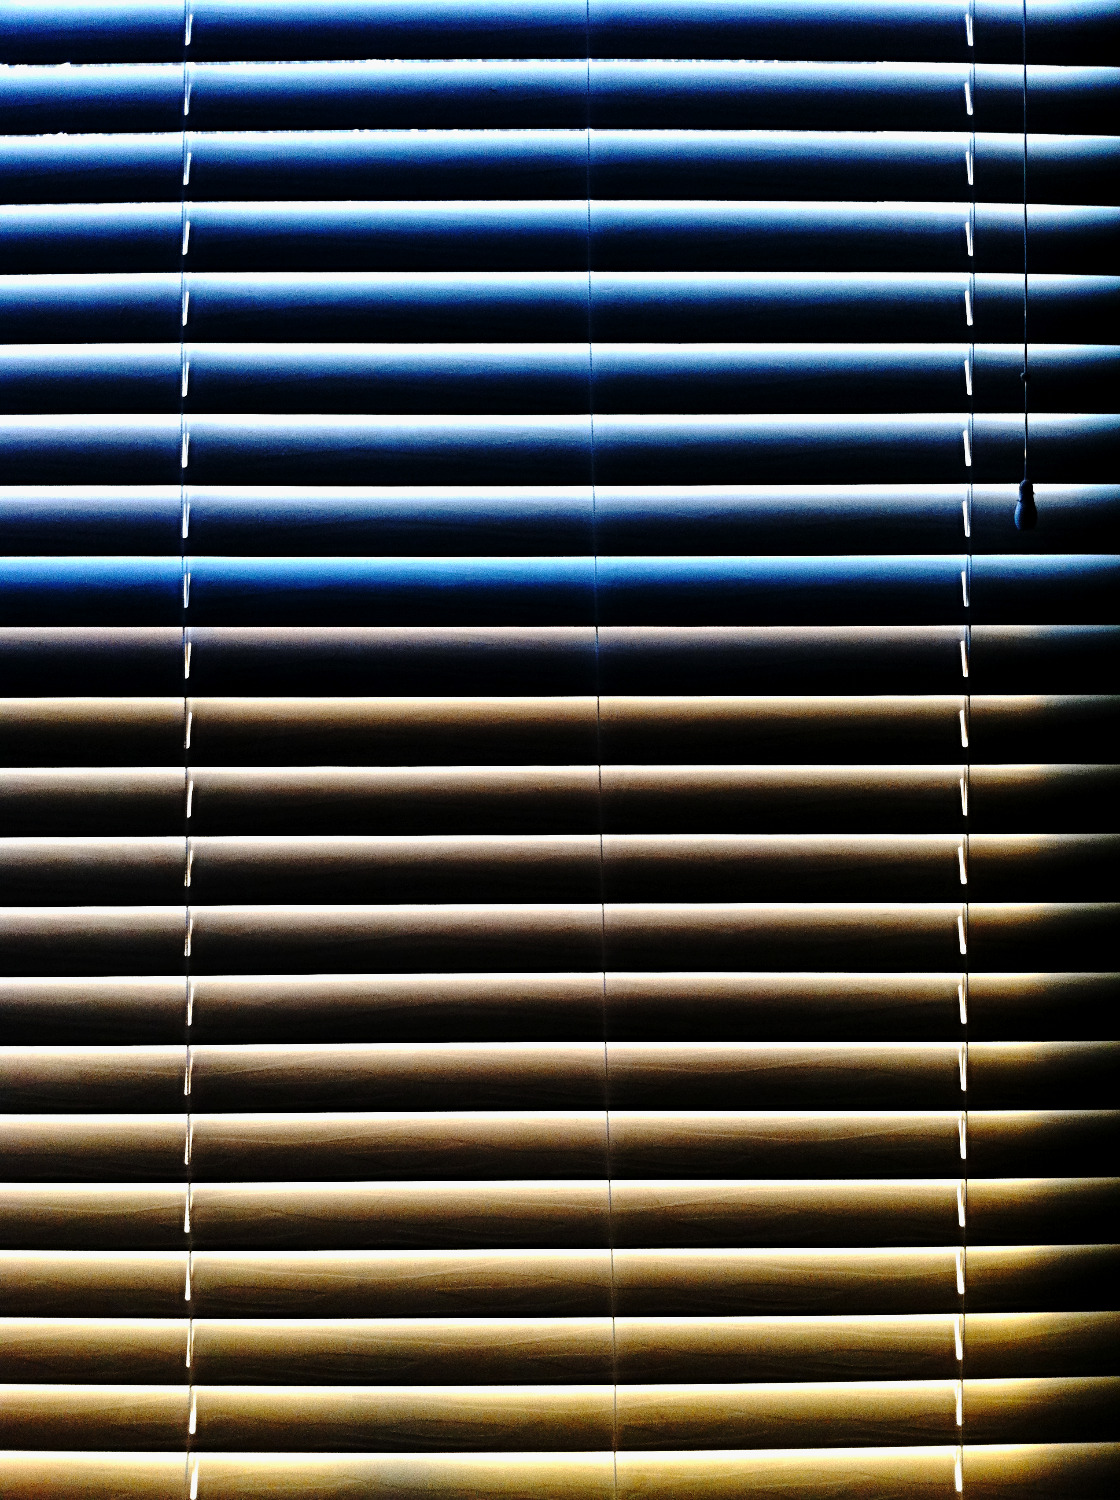 blinds at sunset